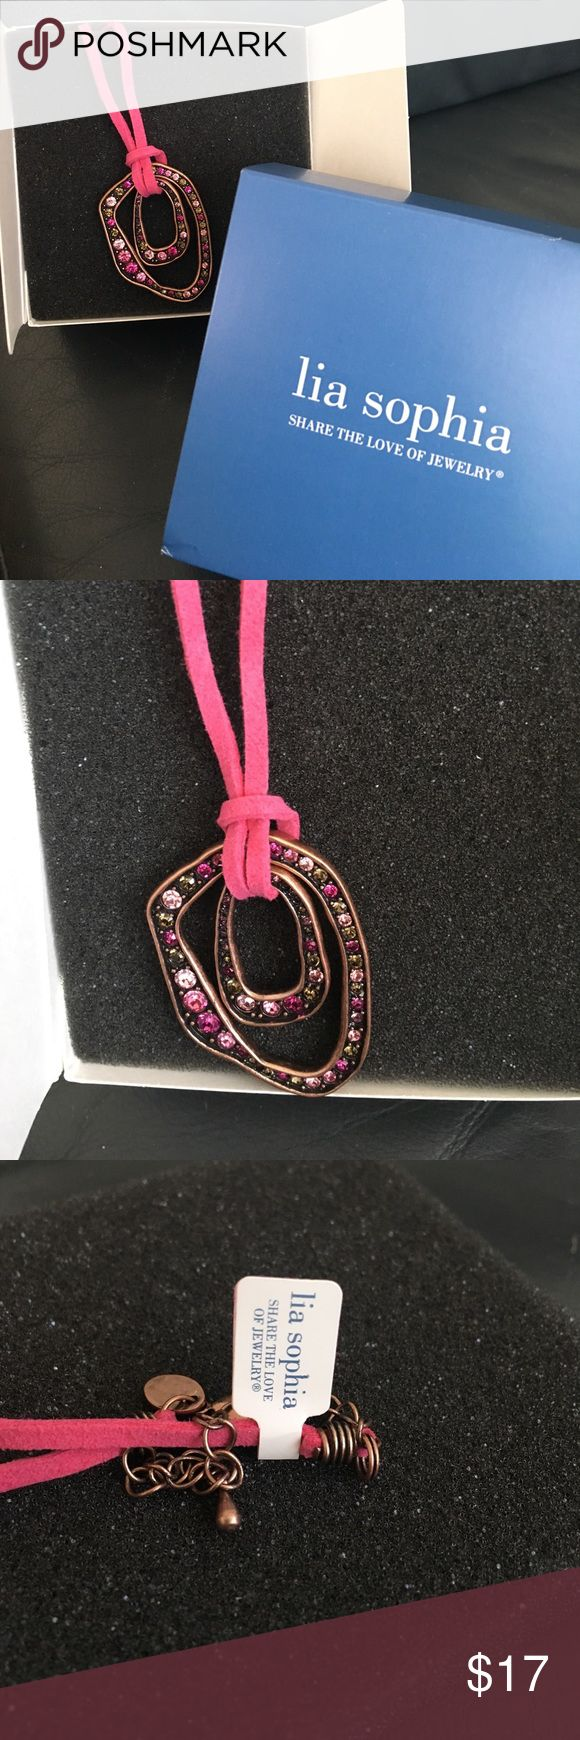 NWT Lia Sophia pink necklace NWT Lia Sophia pink gem necklace with copper tones and pink suede cord.  Very cute piece for a summer accent! Lia Sophia Jewelry Necklaces